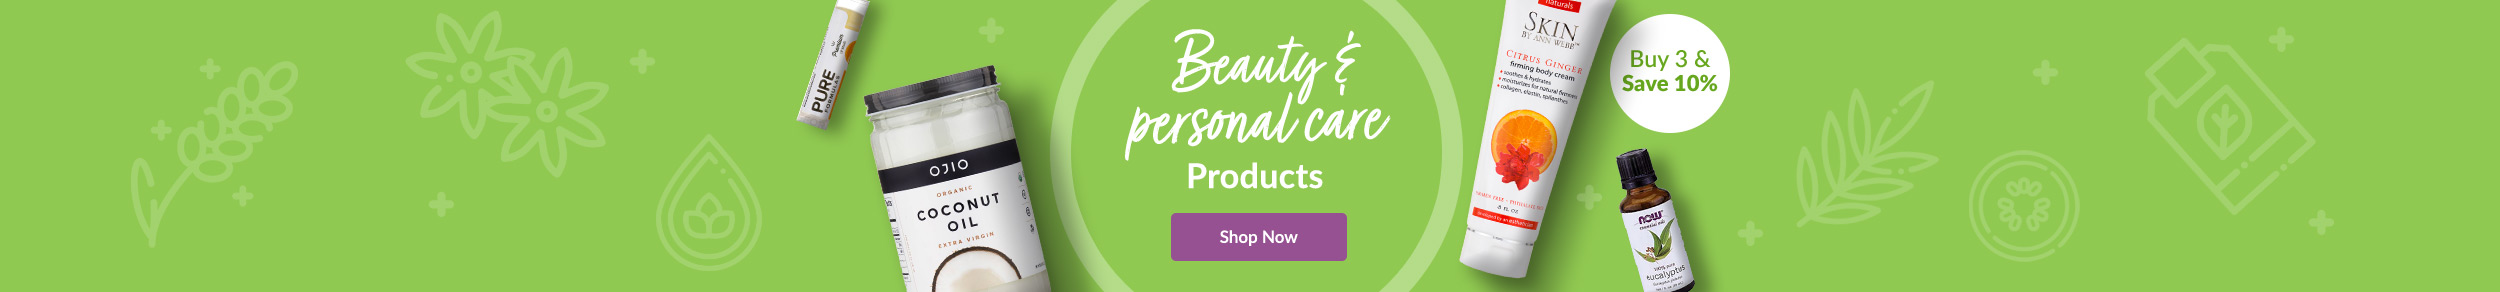 Personal Care Essentials - Choose Your Fragrance. Buy 3 & Save 10%